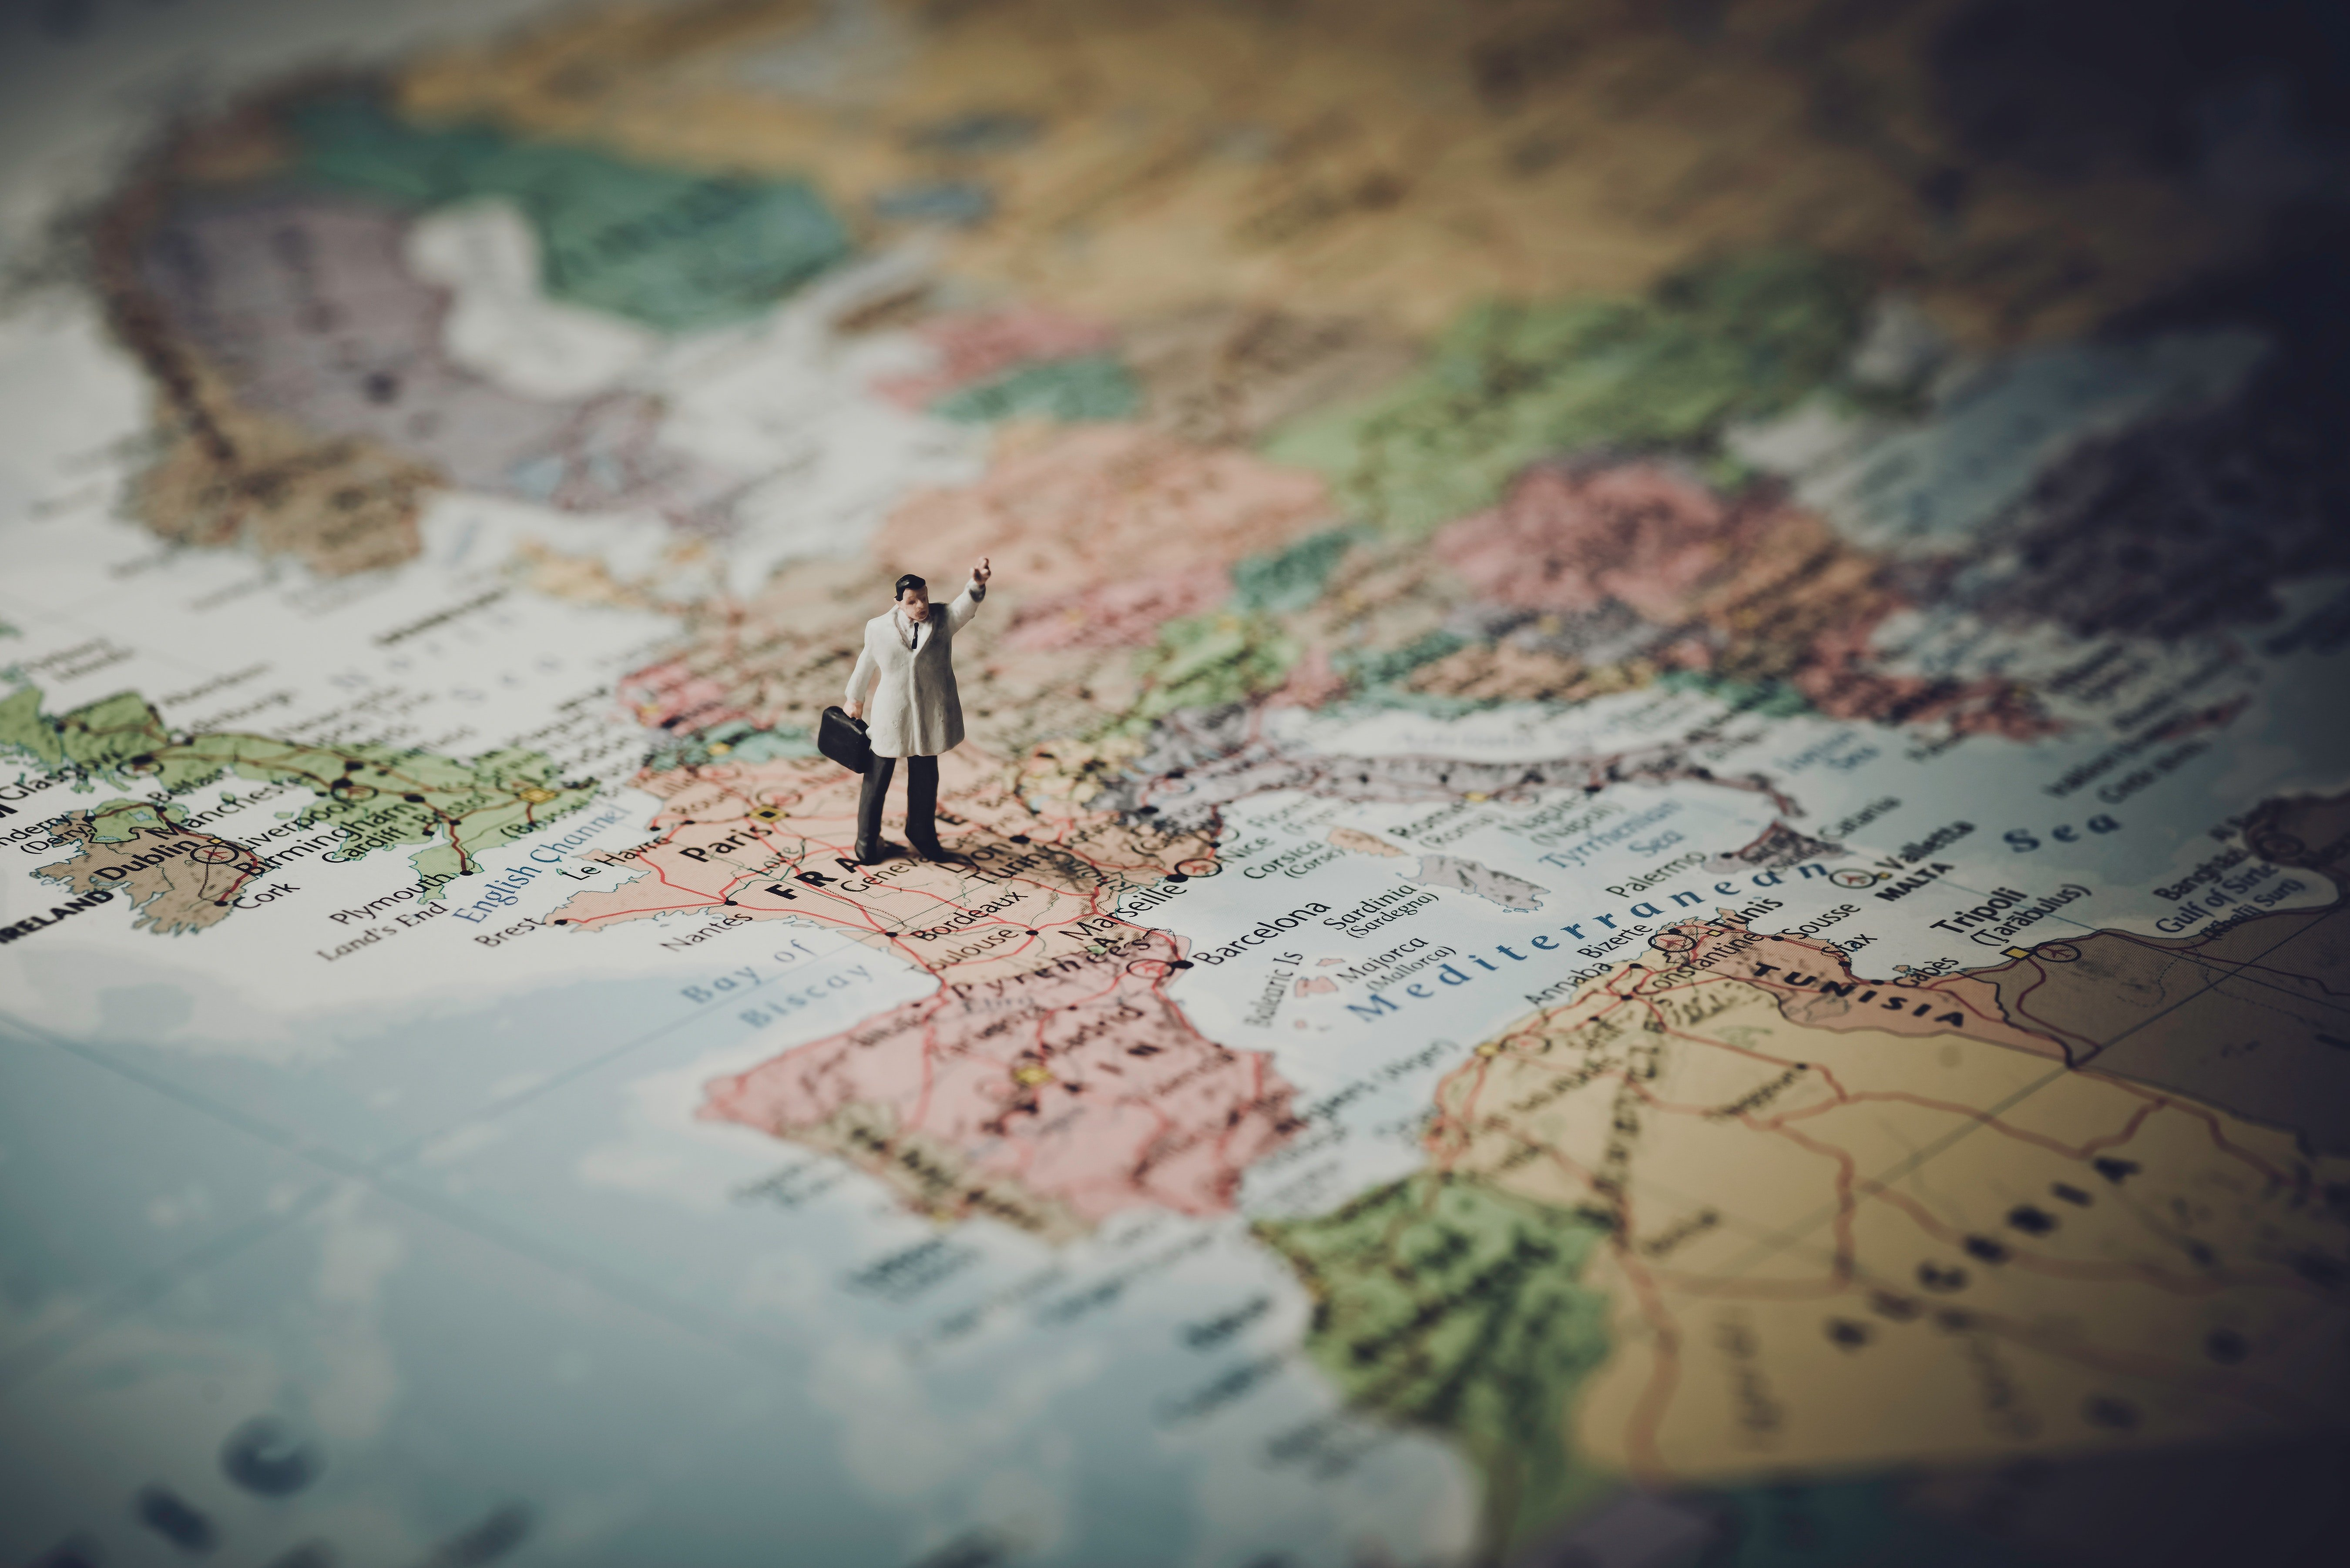 Miniature figure of a man standing on a map of Europe